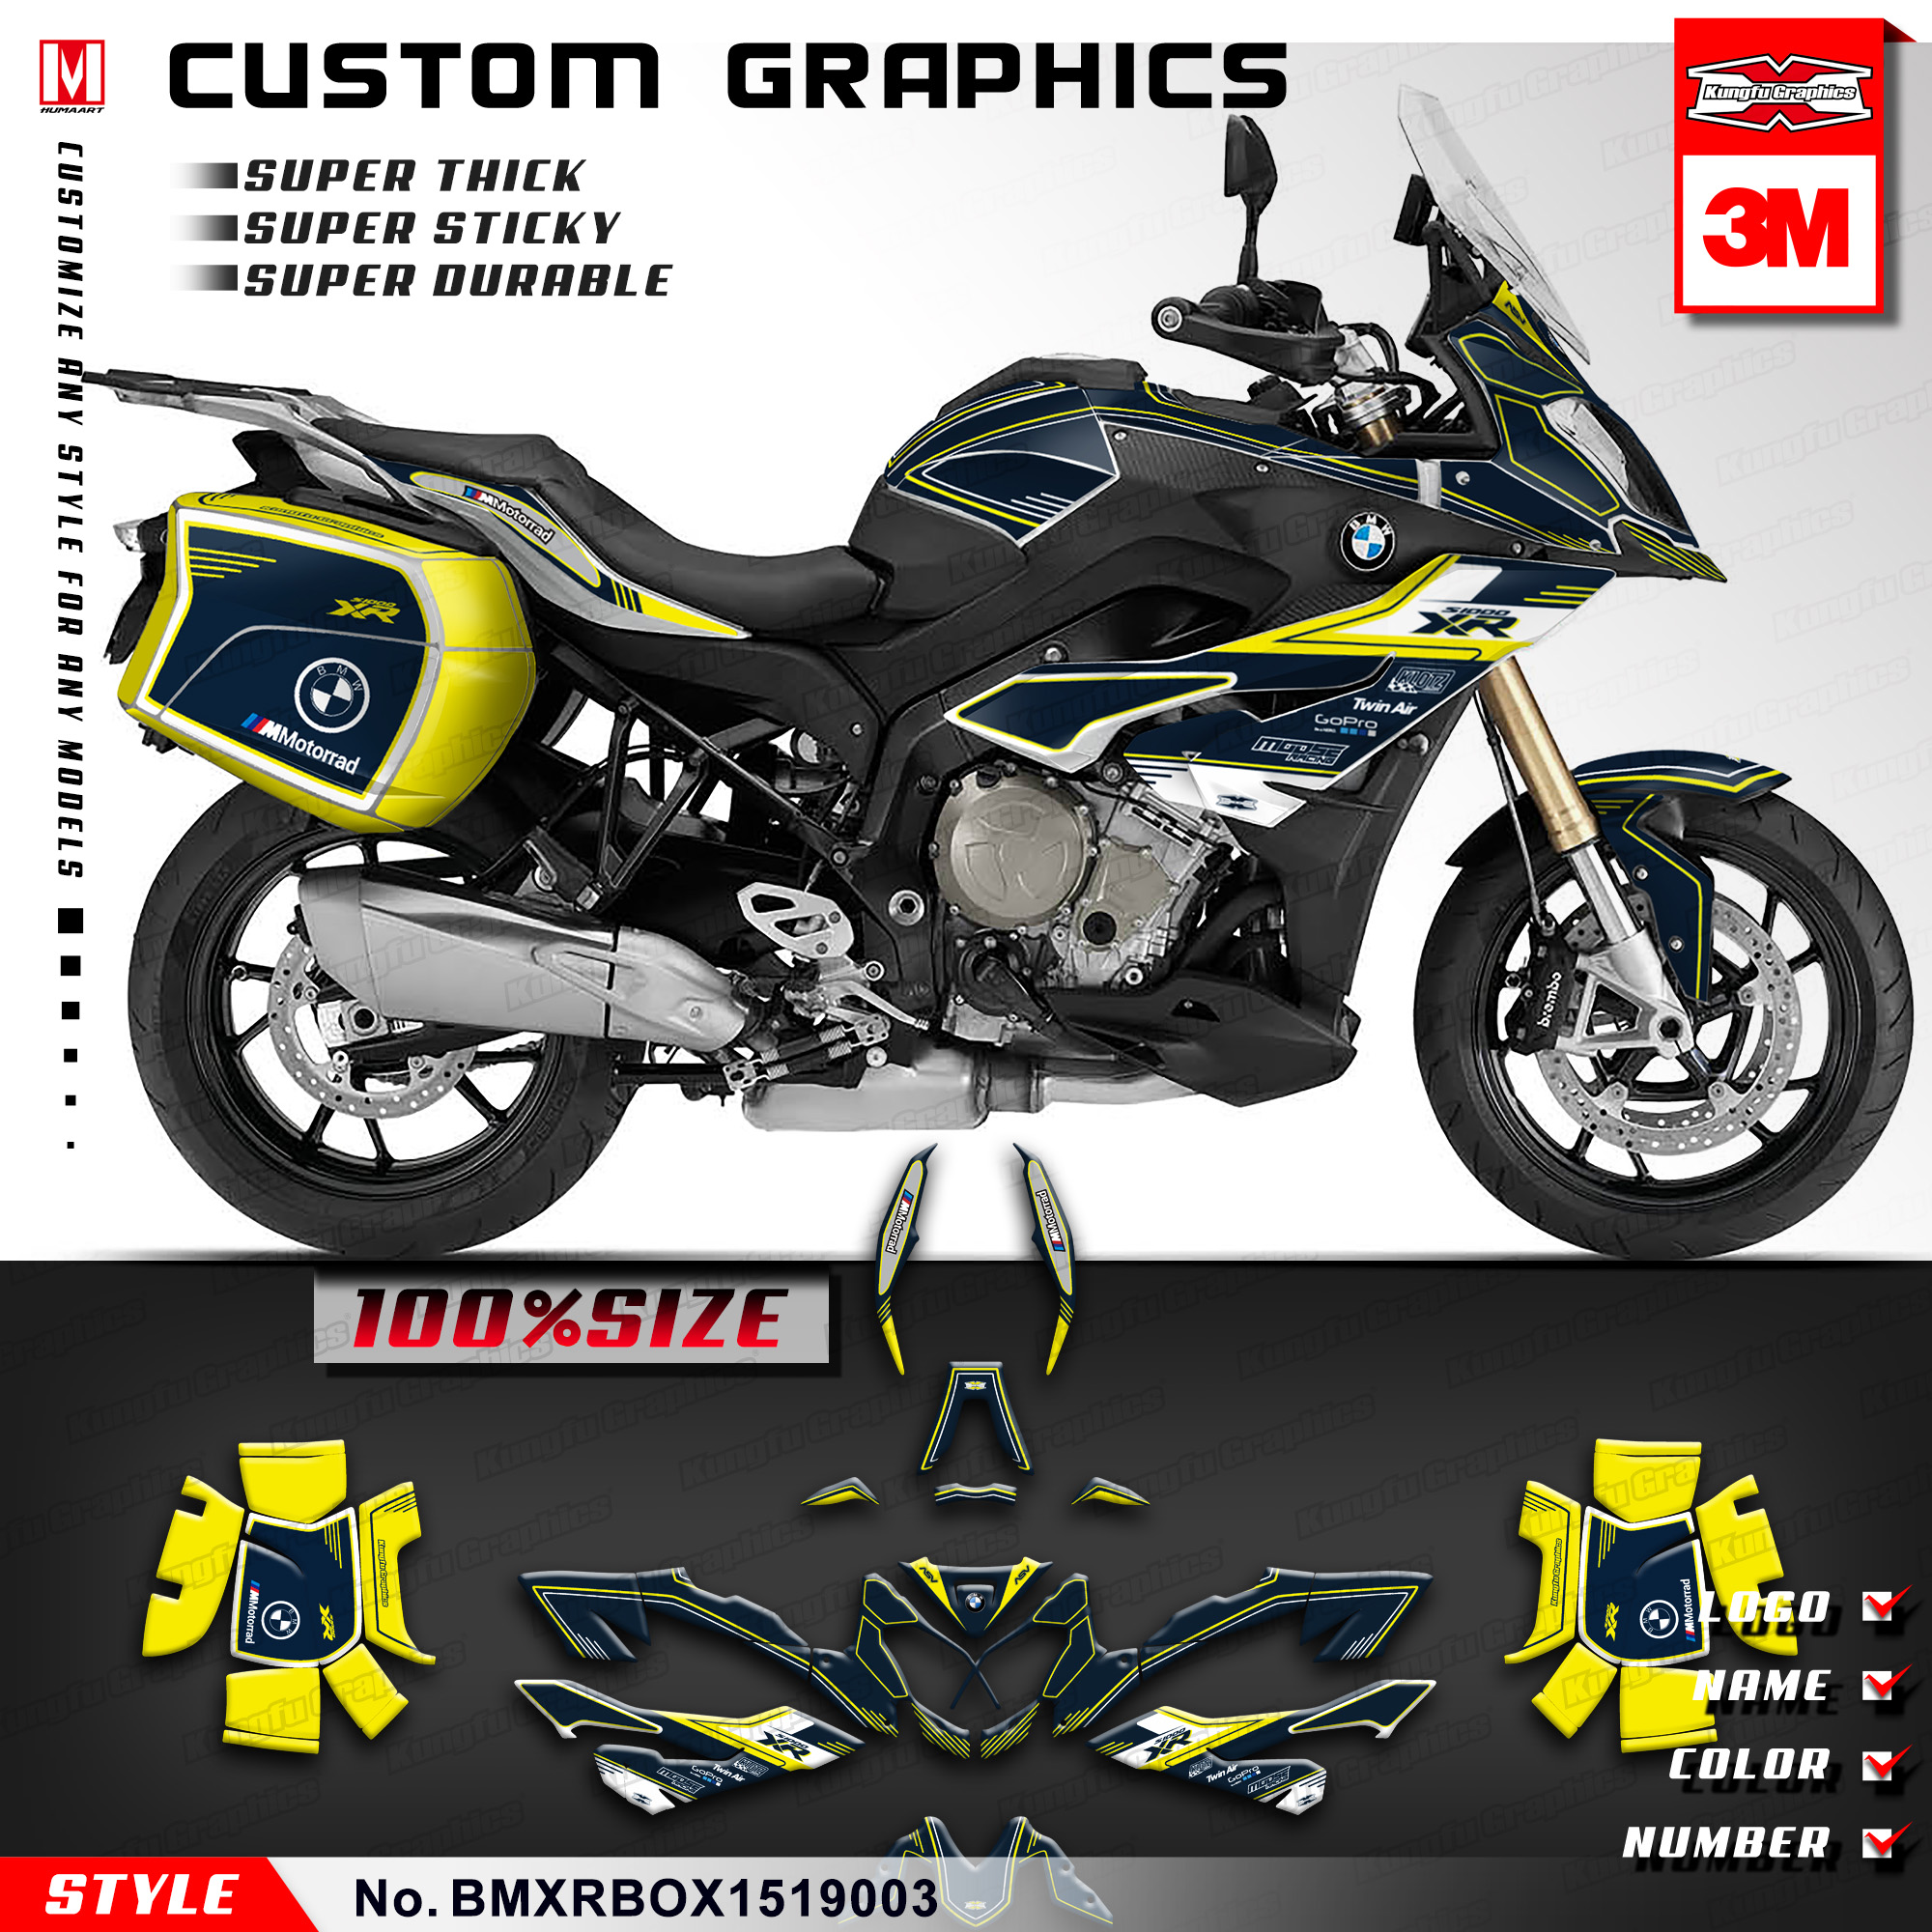 KUNGFU GRAPHICS Personalised Stickers Motorrad Grafik Kit for BMW S1000 XR 2015 2016 2017 2018 2019